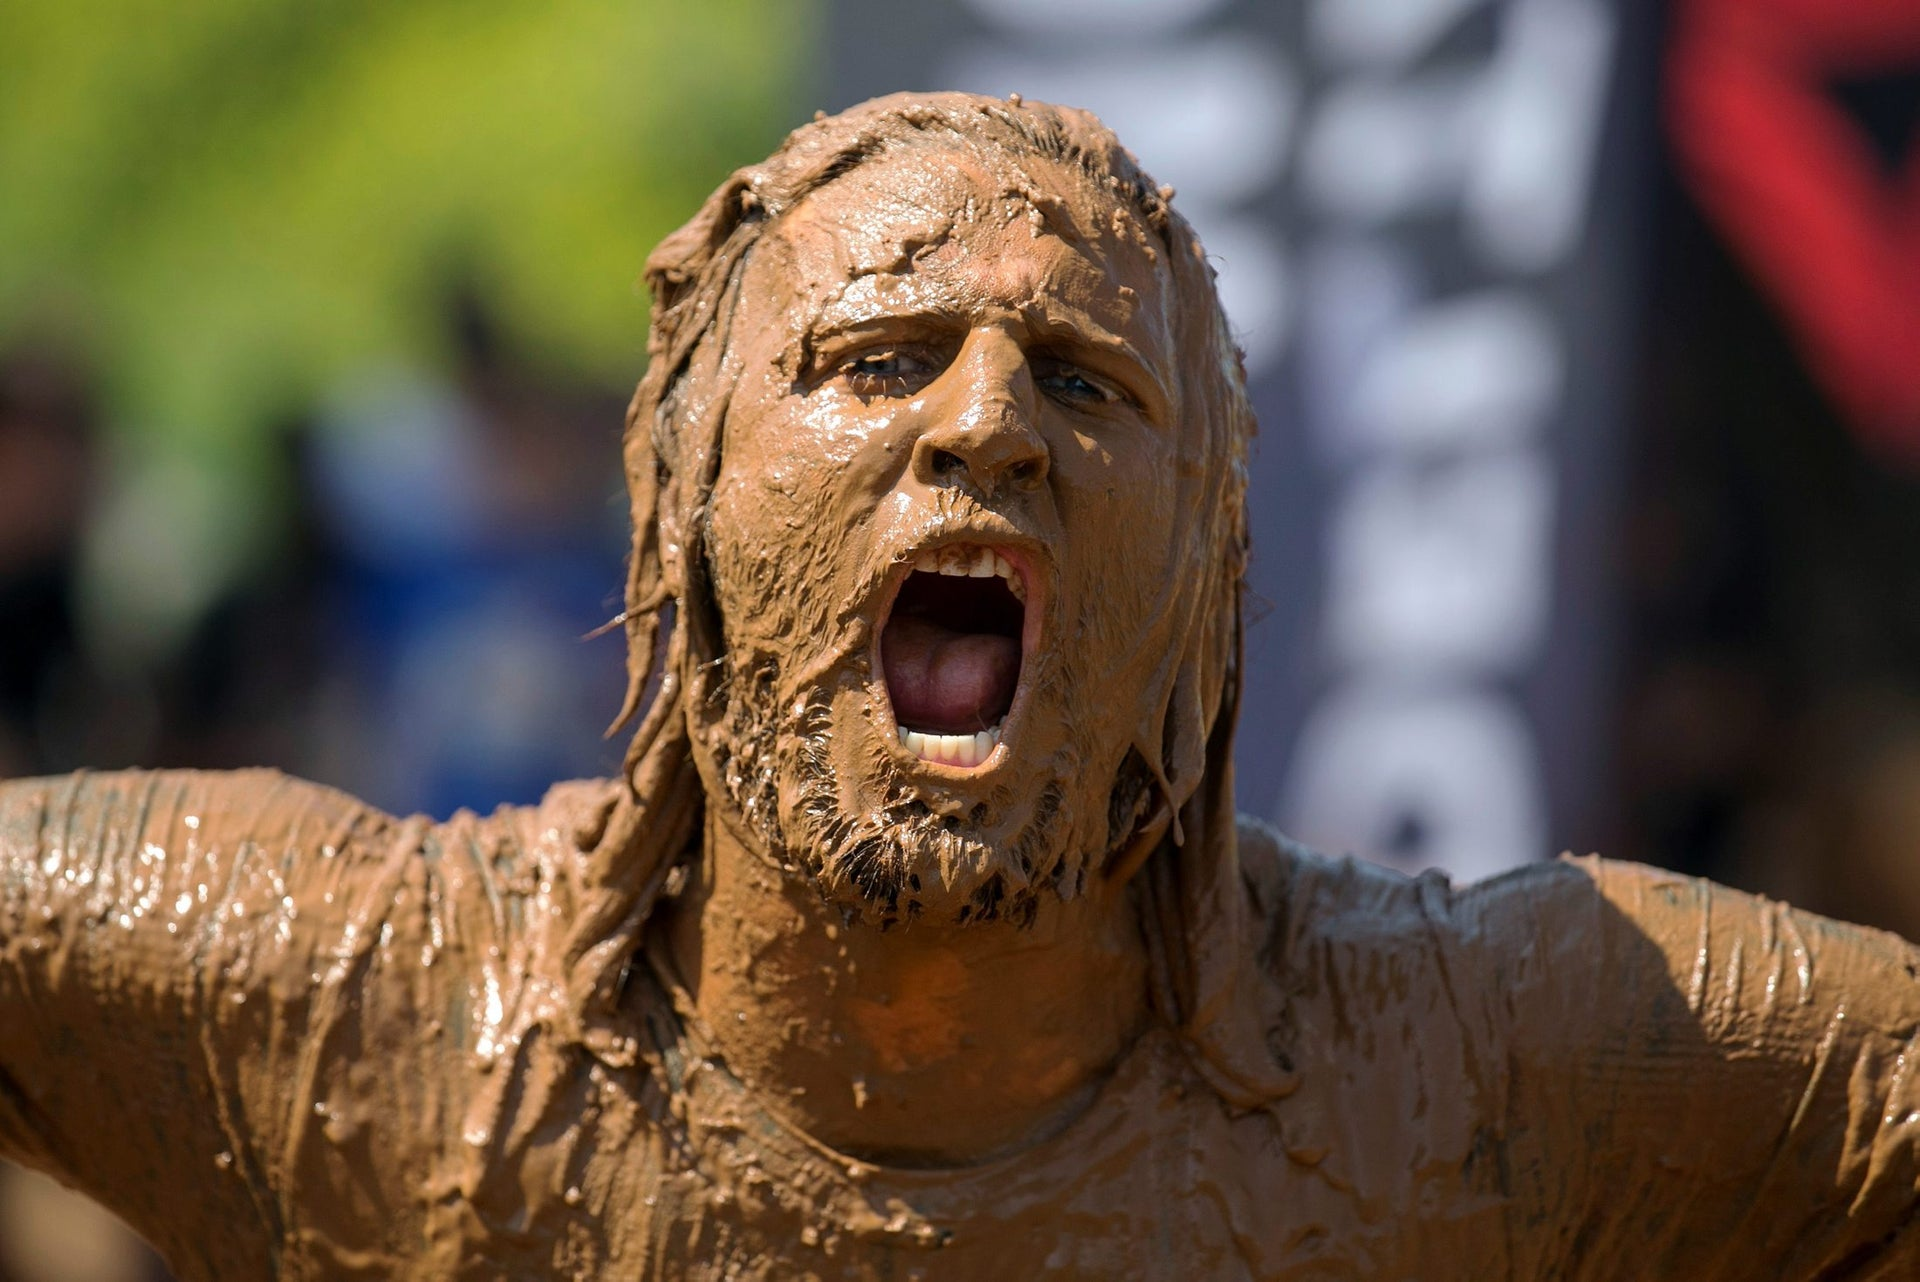 A participant takes part in the first Mud Day Israel obstacle course race in Tel Aviv, Israel March 24, 2017.